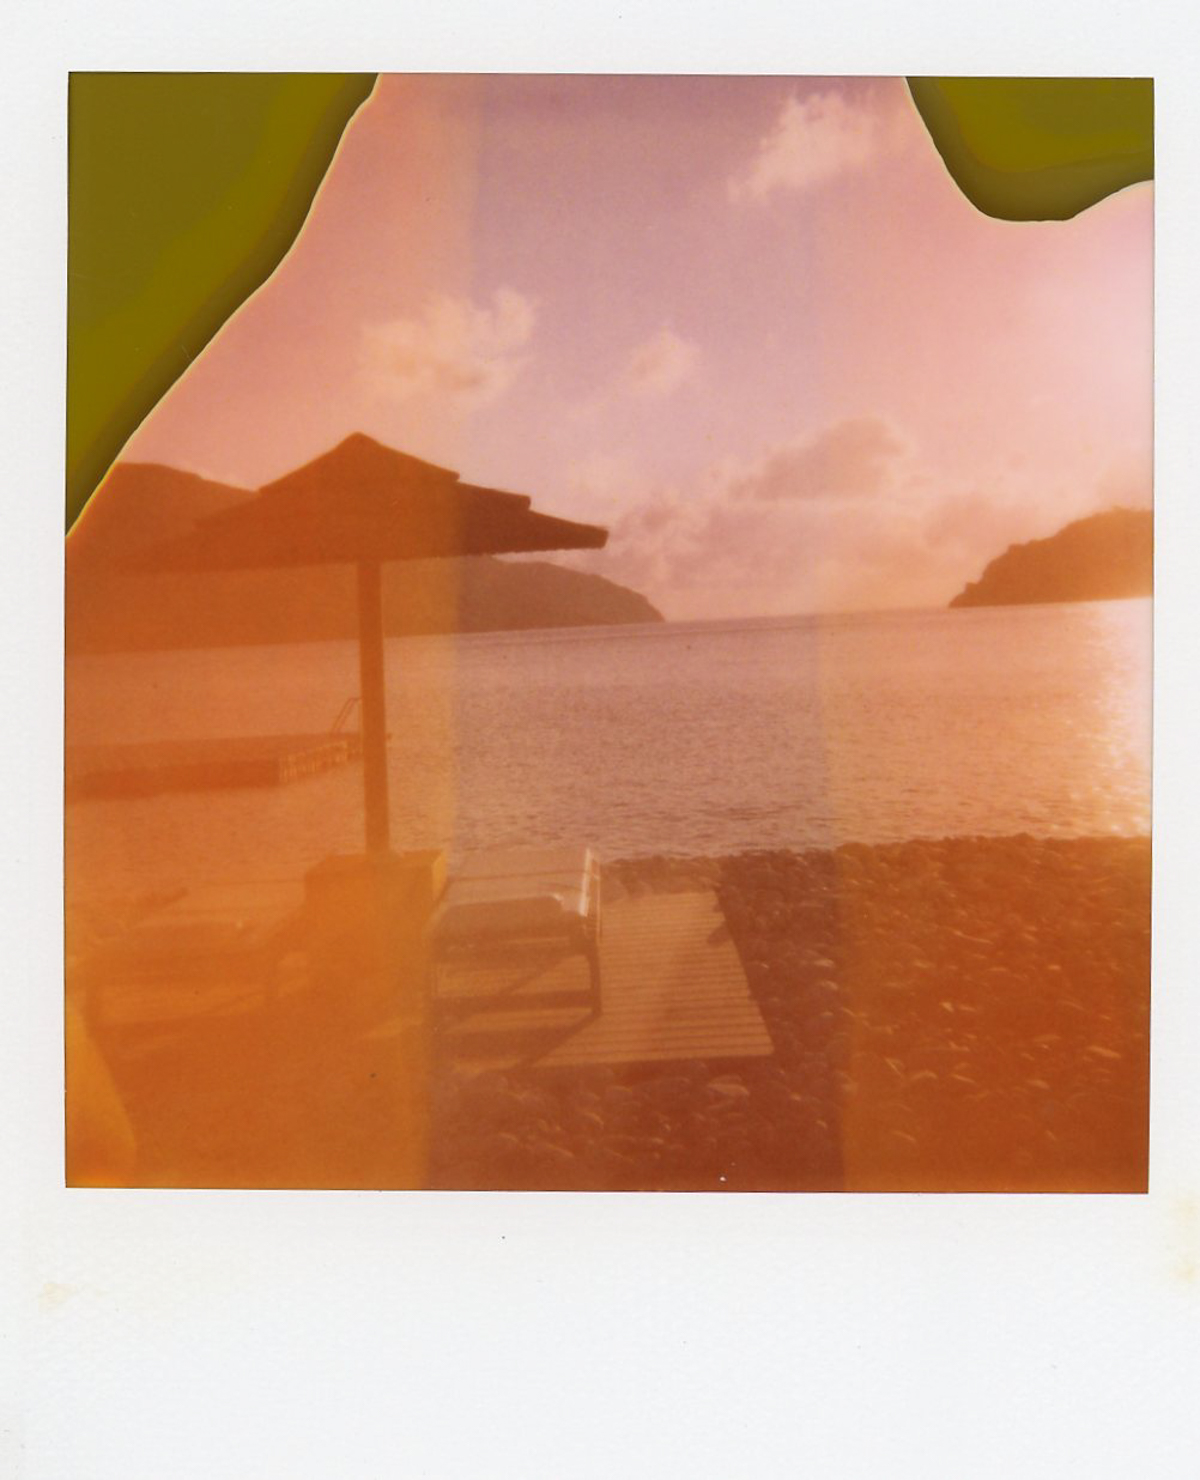 Greece on Expired Polaroid 600 Film | Azzari Jarrett